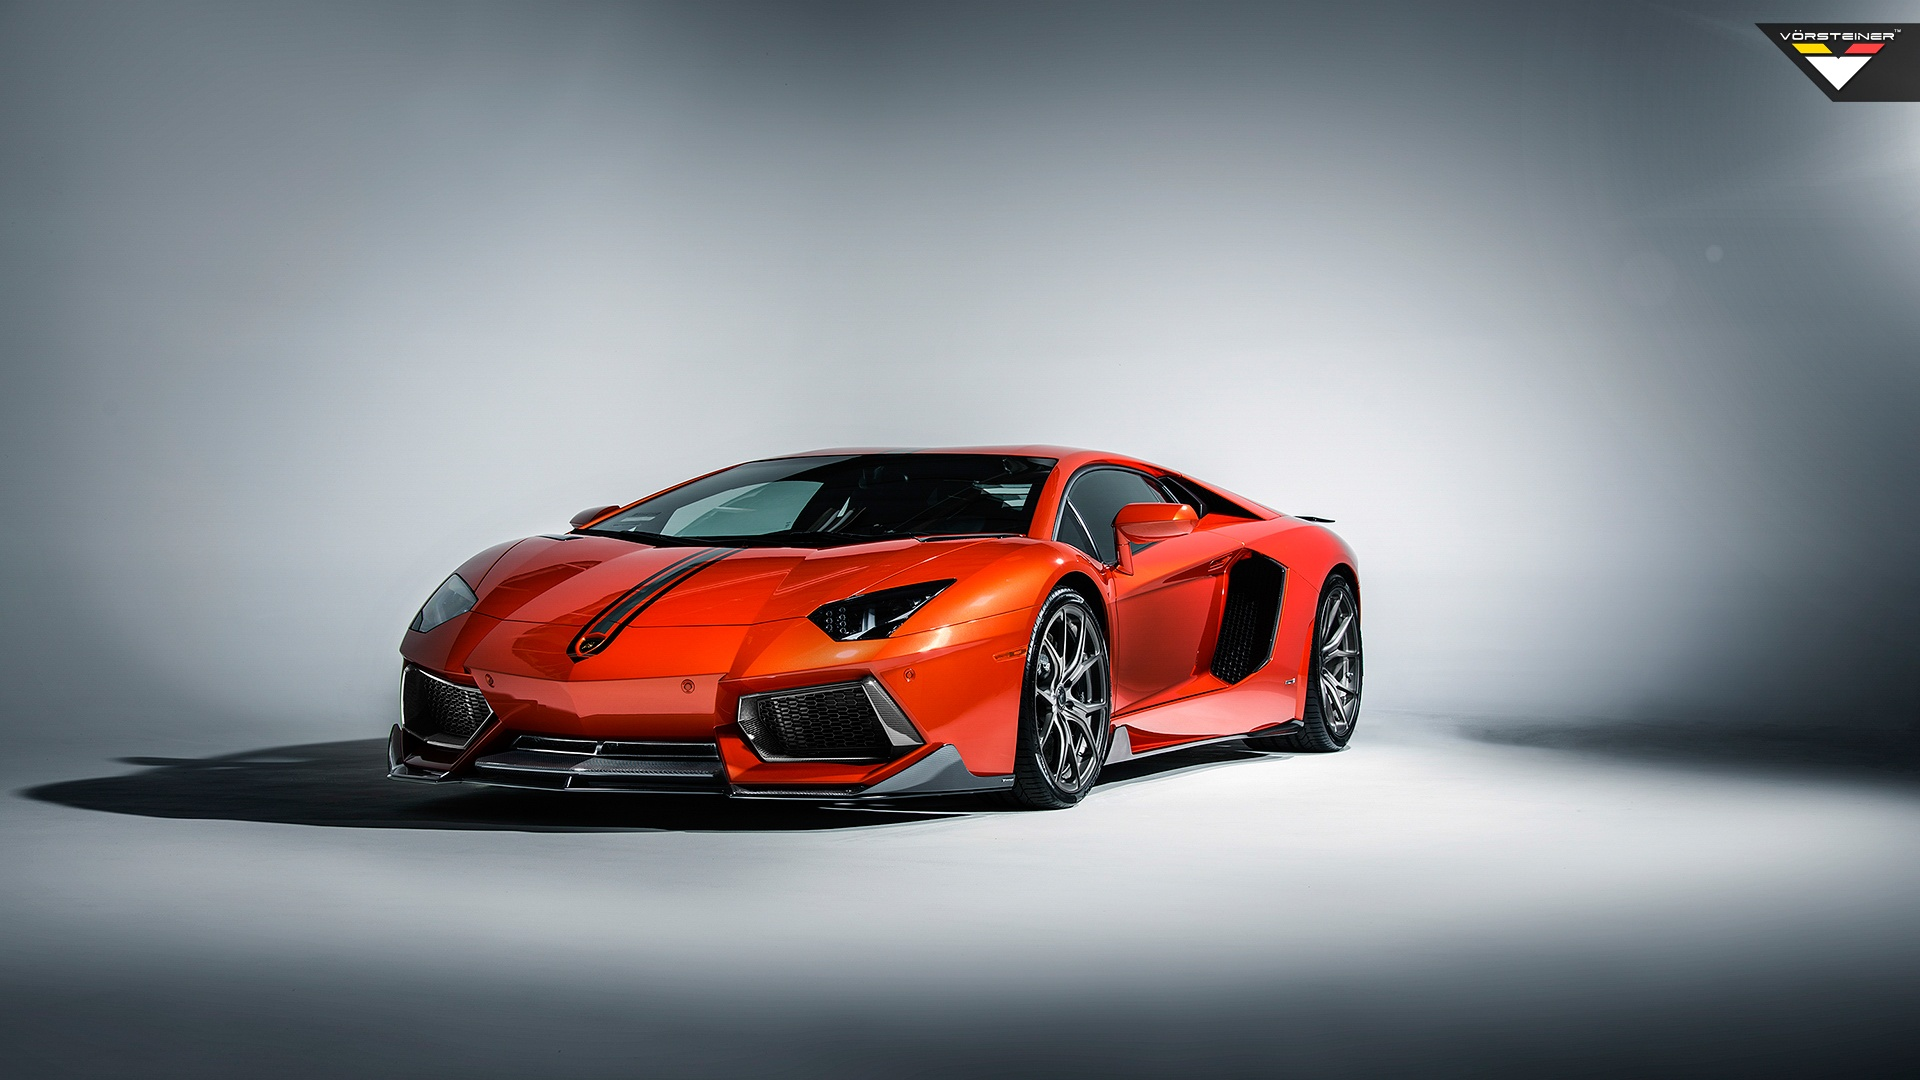 25 Exotic Amp Awesome Car Wallpapers Hd Edition Stugon